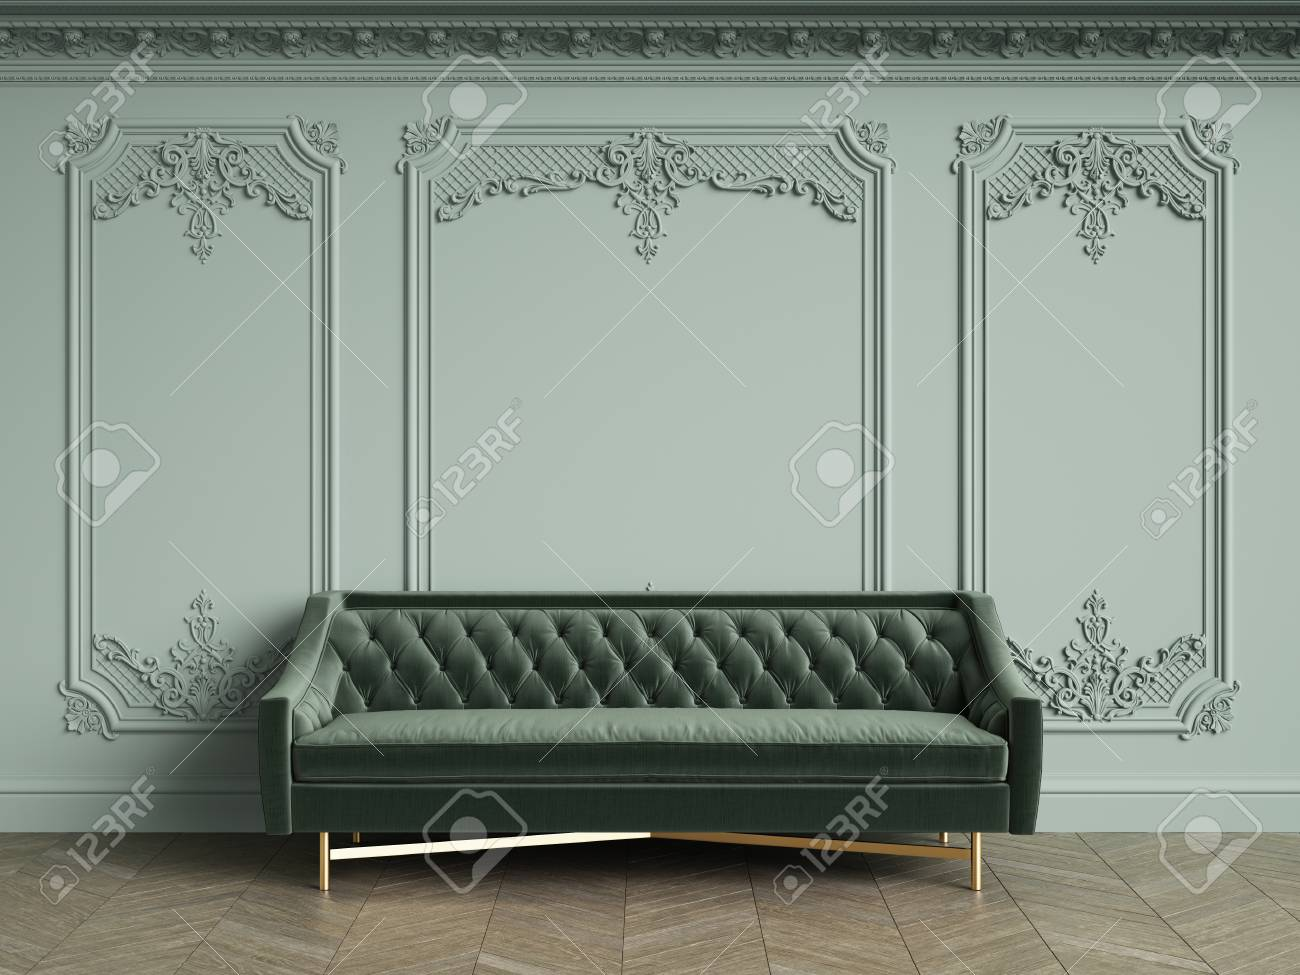 Green Tufted Sofa In Classic Vintage Interior With Copy Space.Pale ...